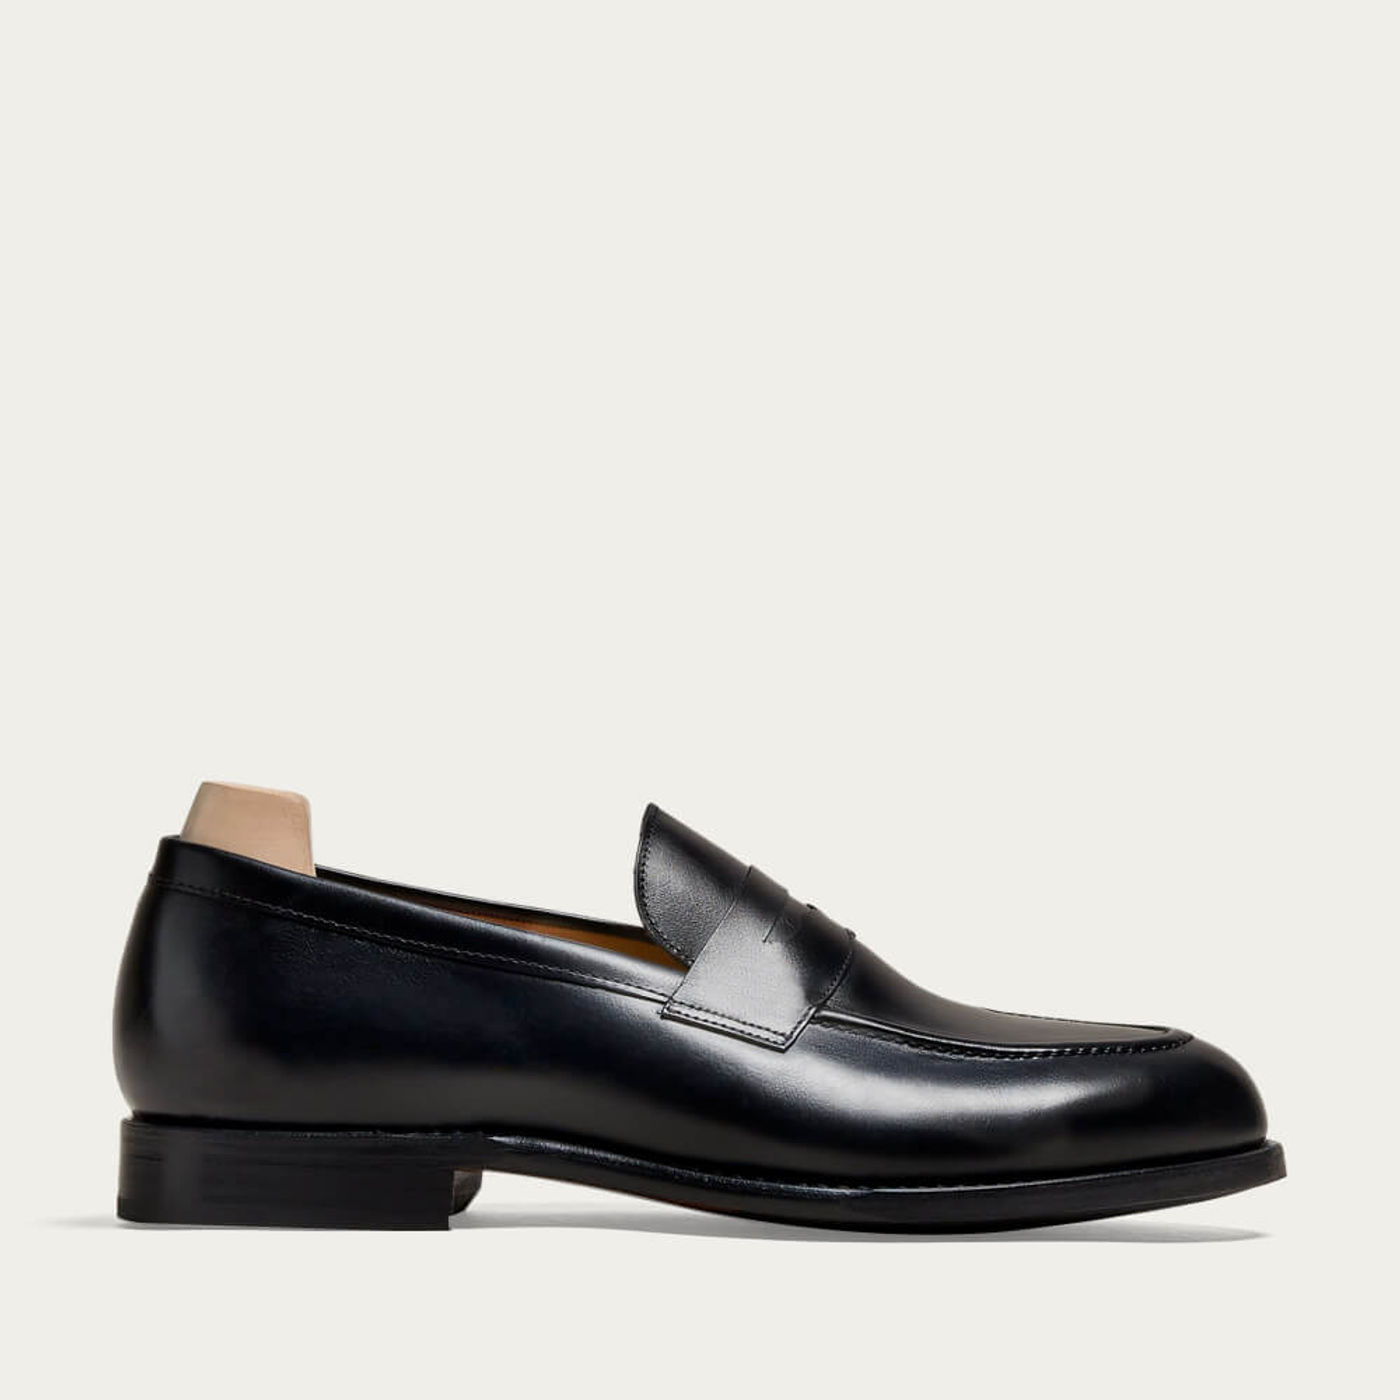 Black Smögen Calf Loafers with Leather Sole   Bombinate